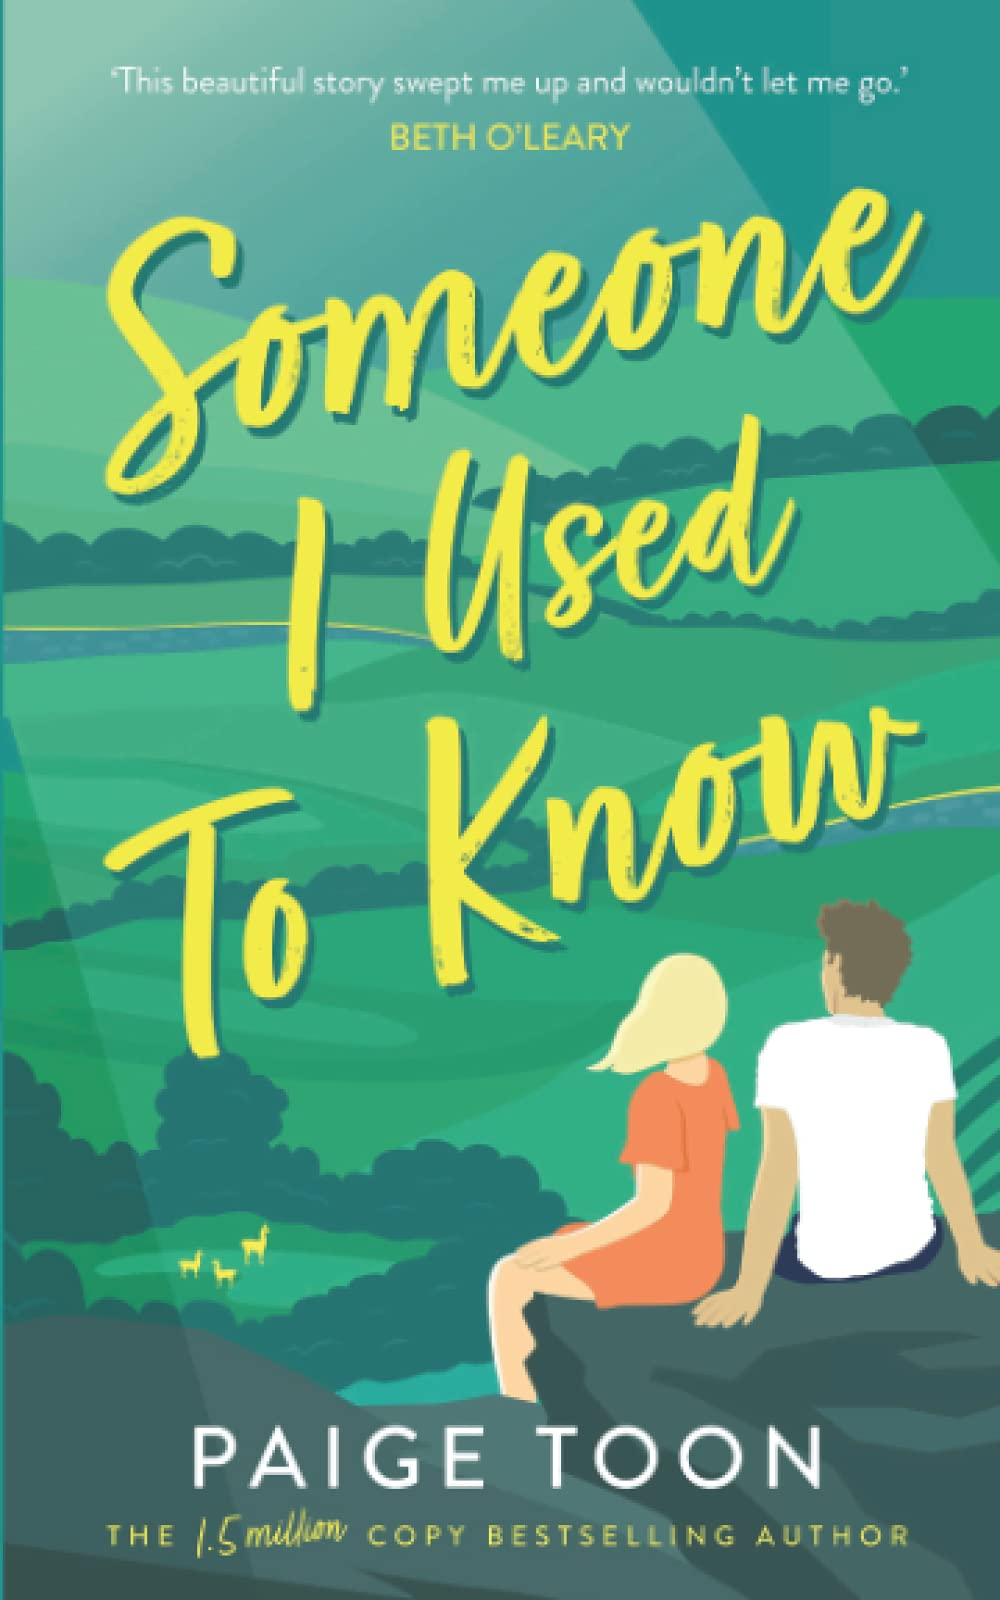 Someone I Used To Know by Paige Toon